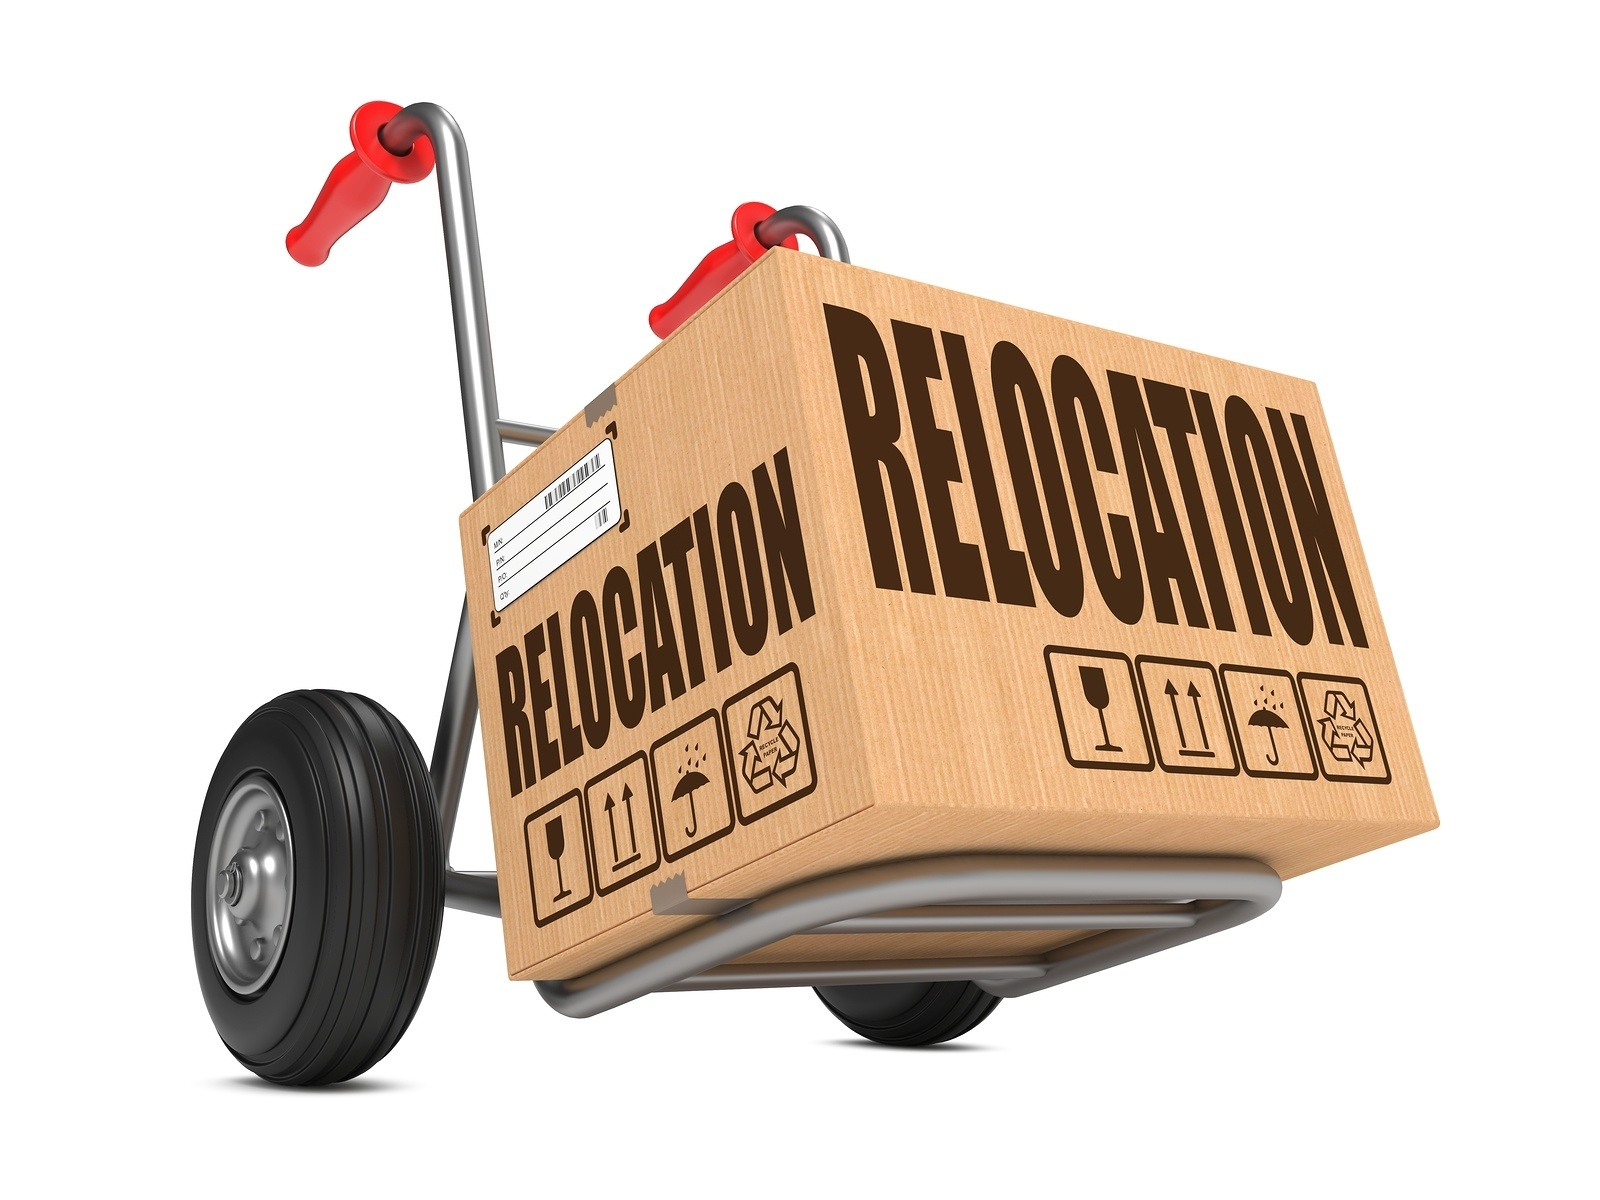 relocation-cardboard-box.jpg